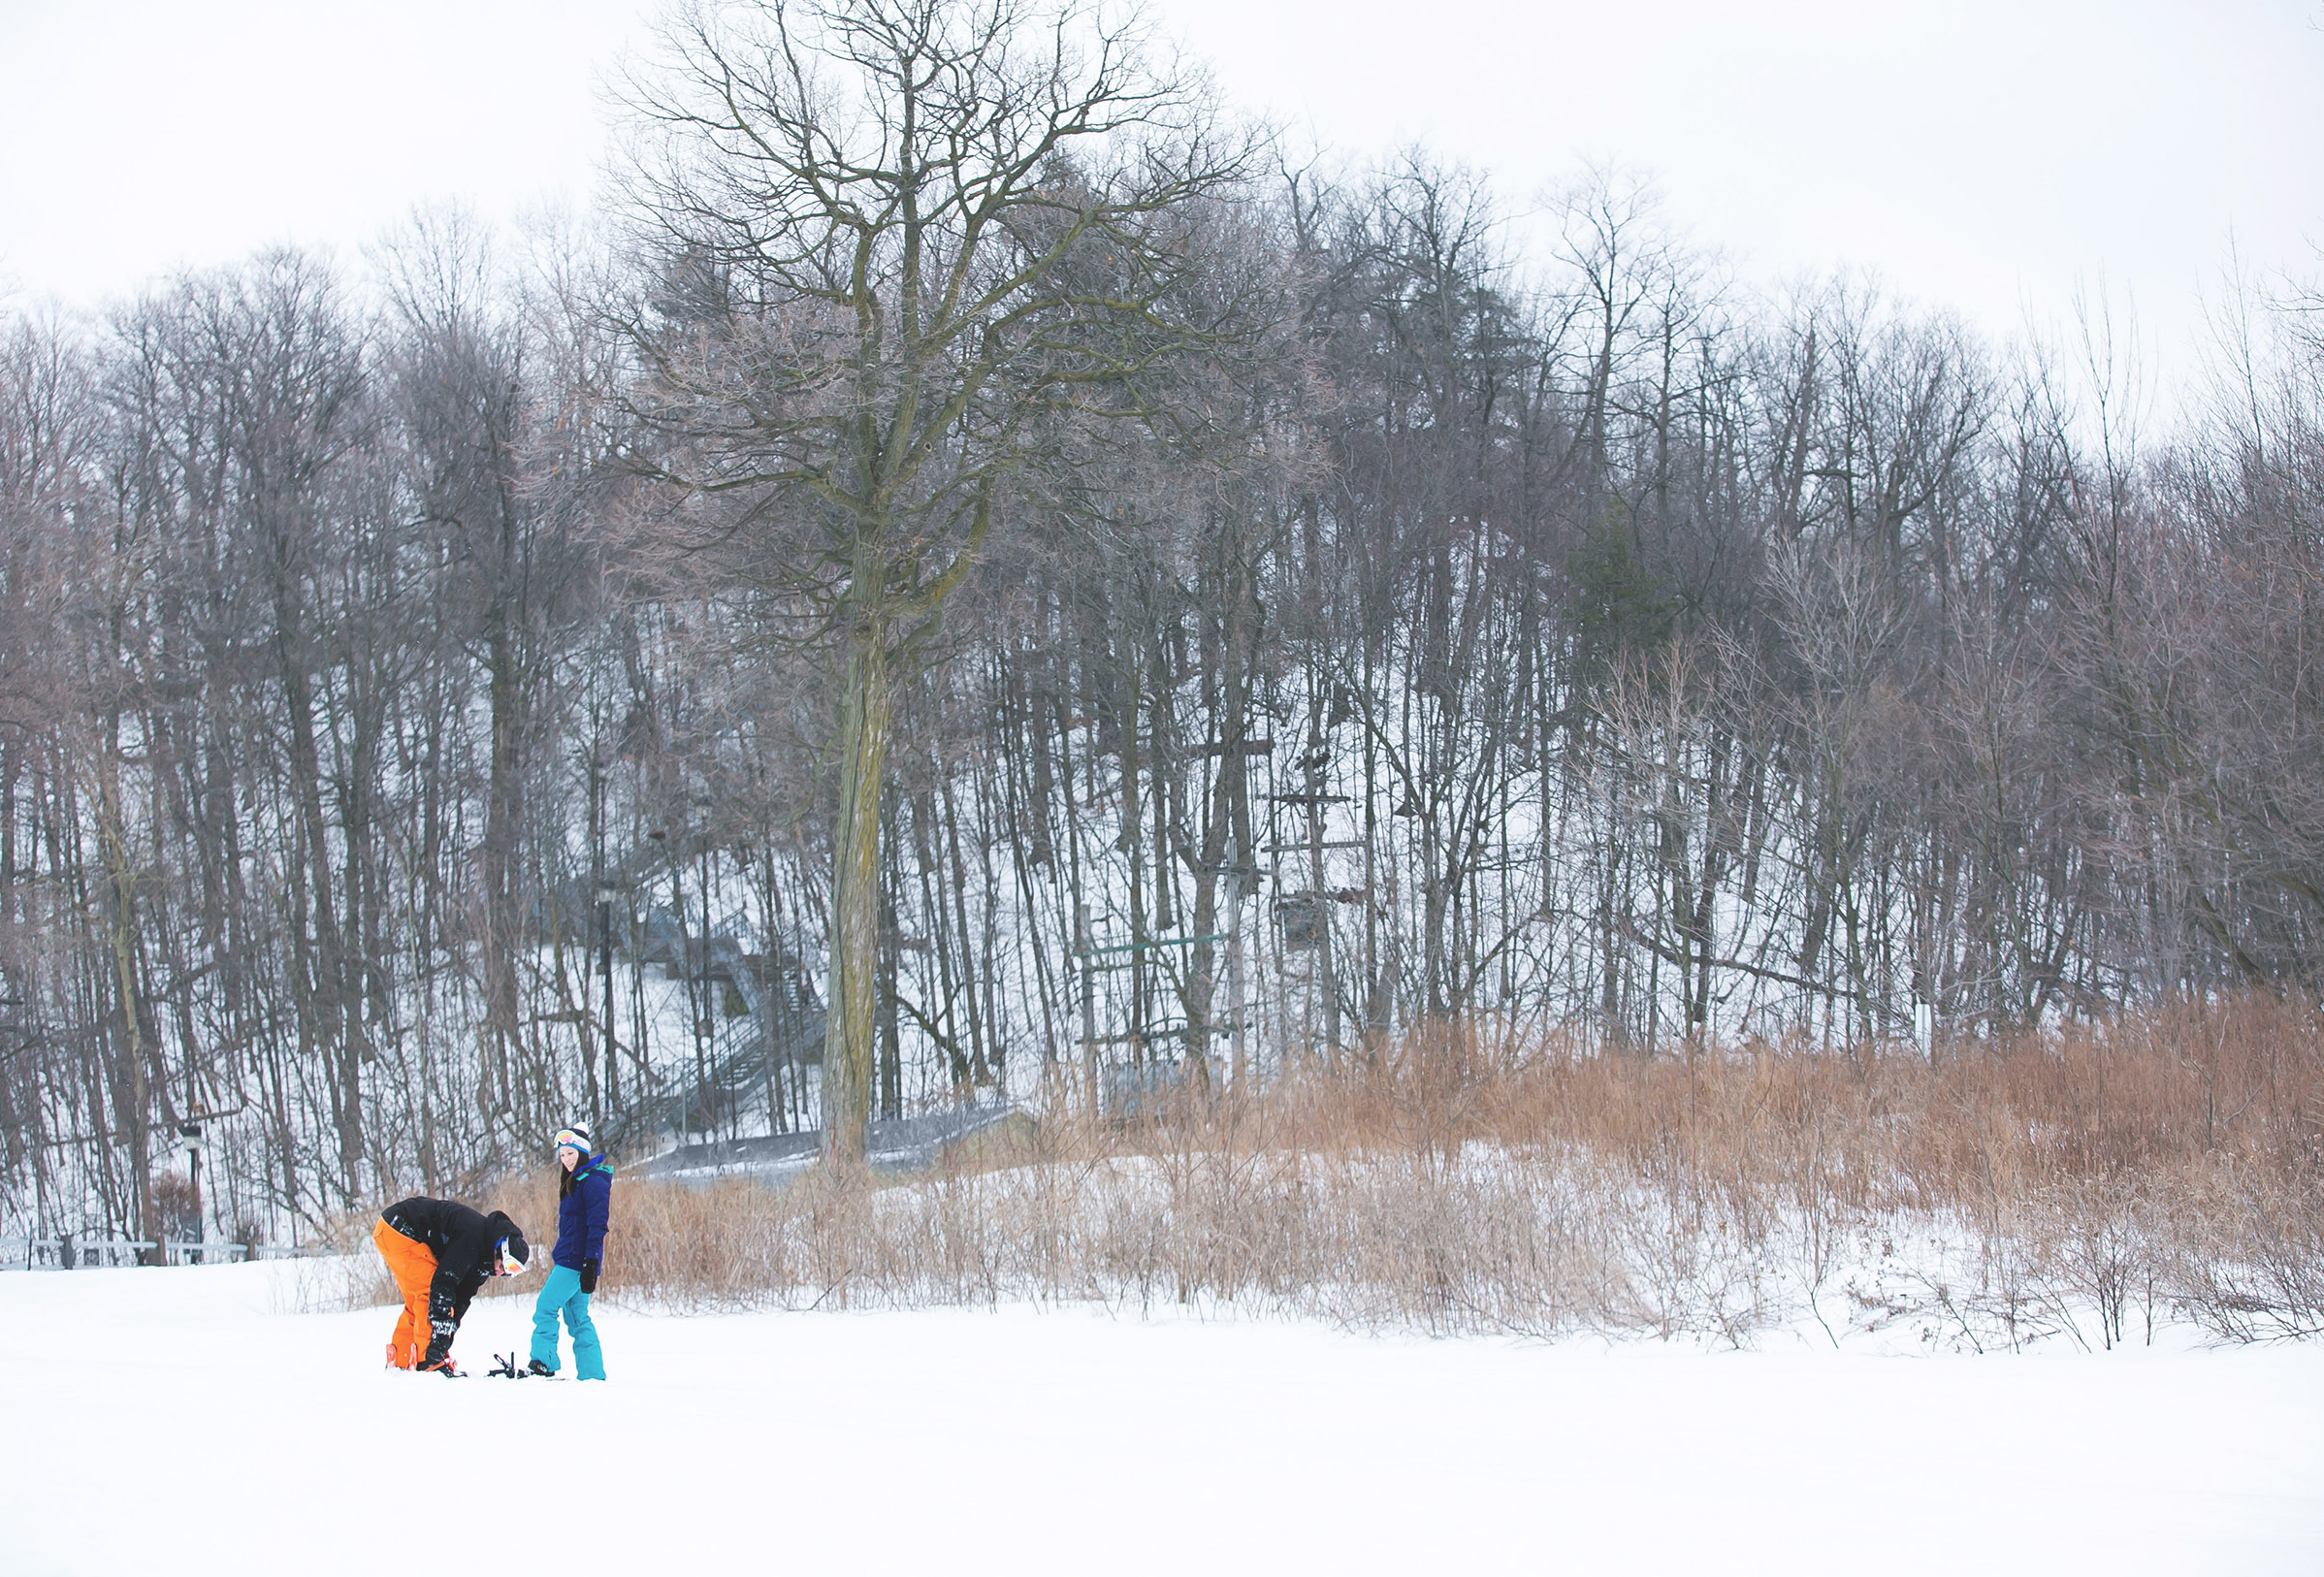 Engagement-Photos-Hamilton-Niagara-Toronto-Burlington-Oakville-Photographer-Engaged-Ring-Photography-Snowboarding-Winter-Moments-by-Lauren-Image-3.png